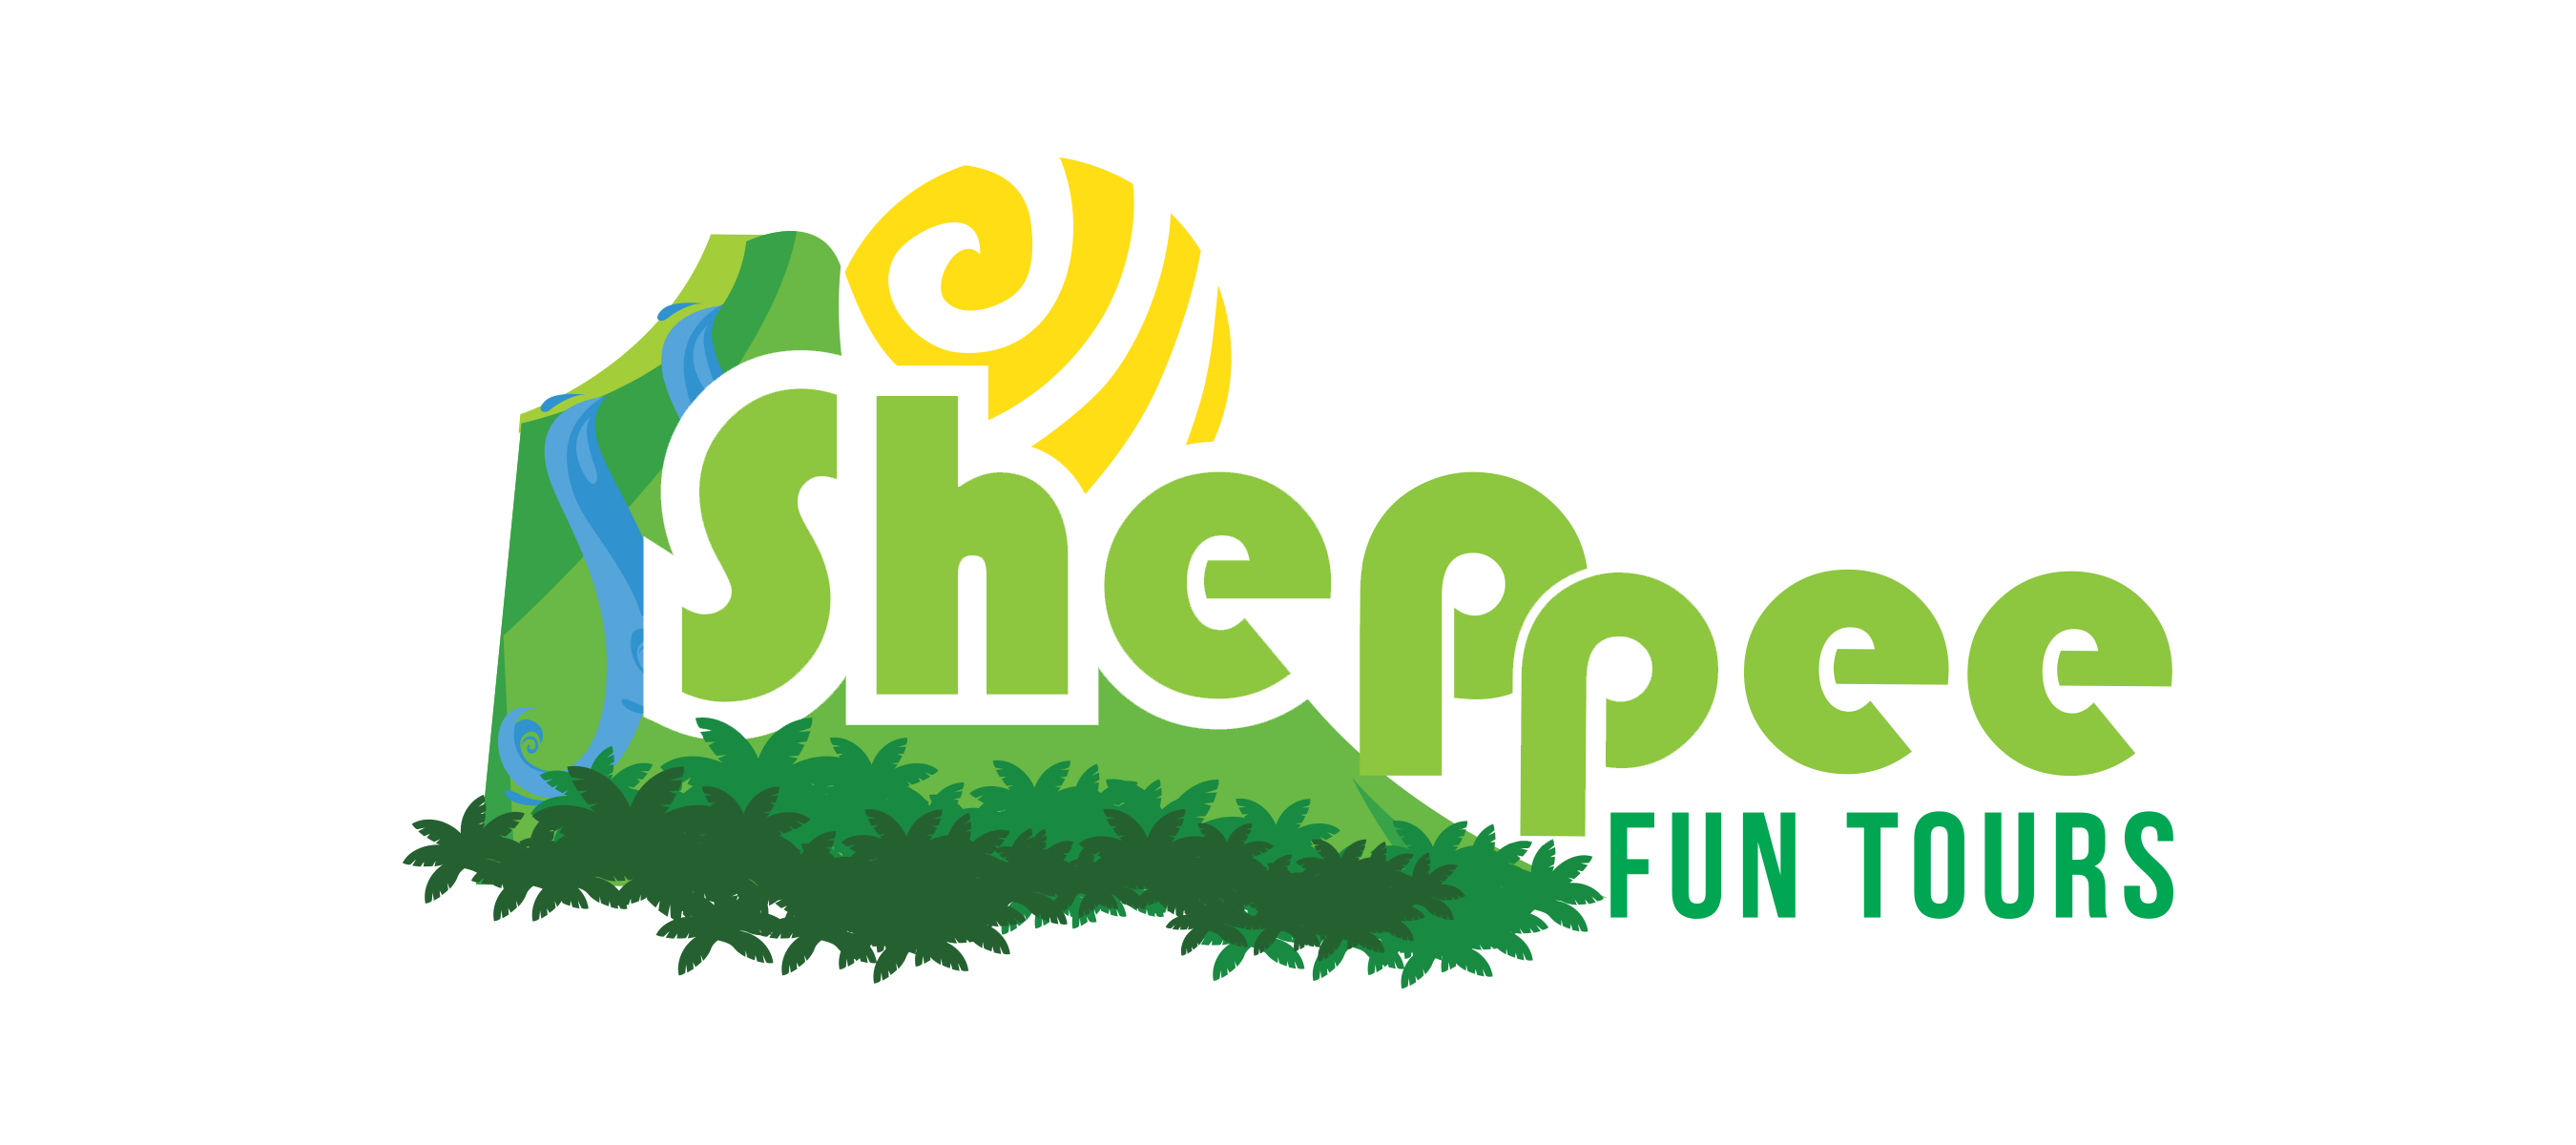 Sheppee Fun Tours